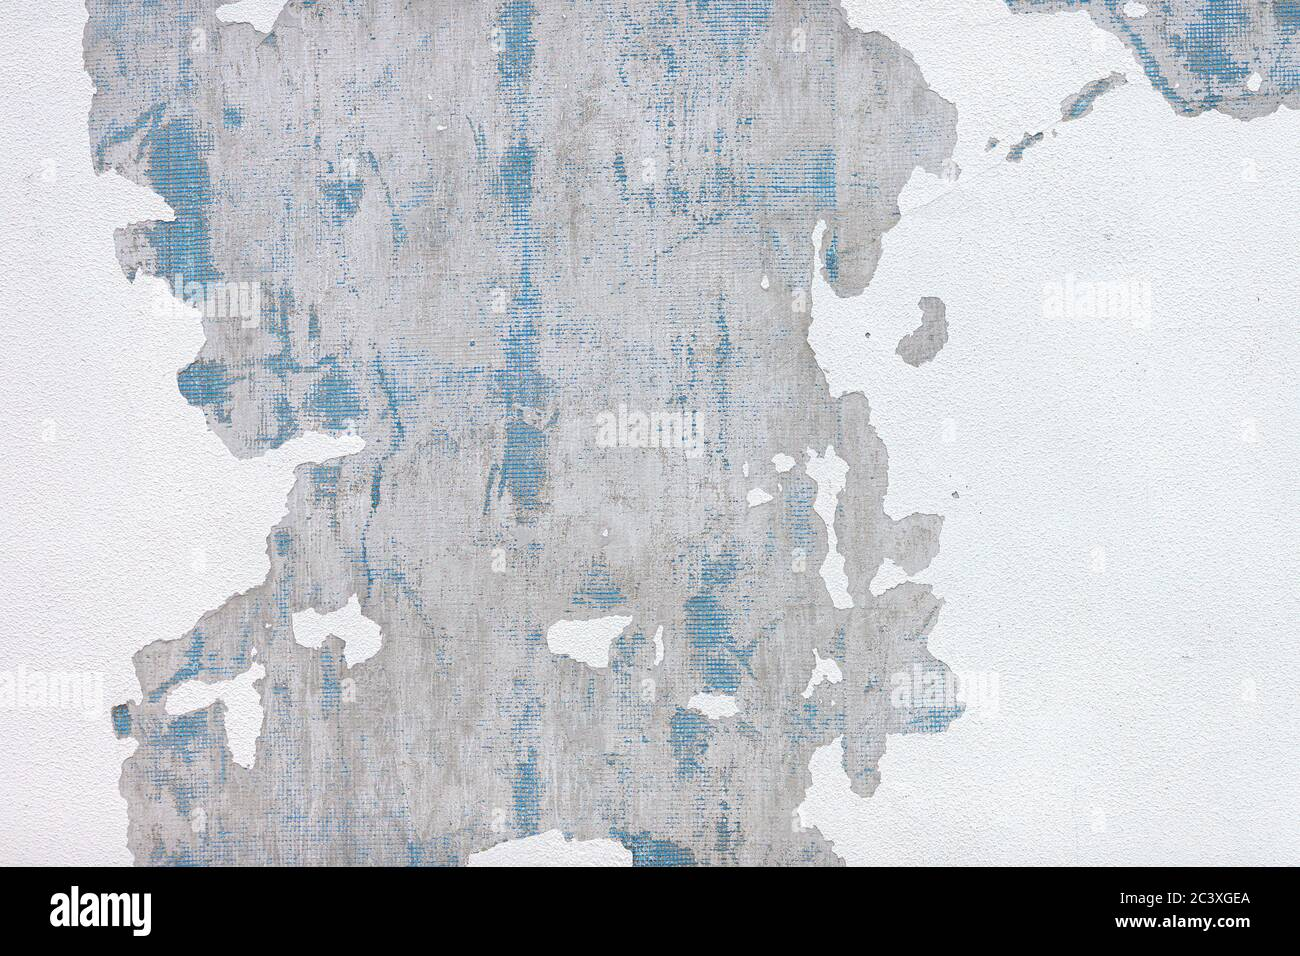 White shabby wall surface with peeling plaster and paint. Building facade with damaged paint. Texture, background Stock Photo